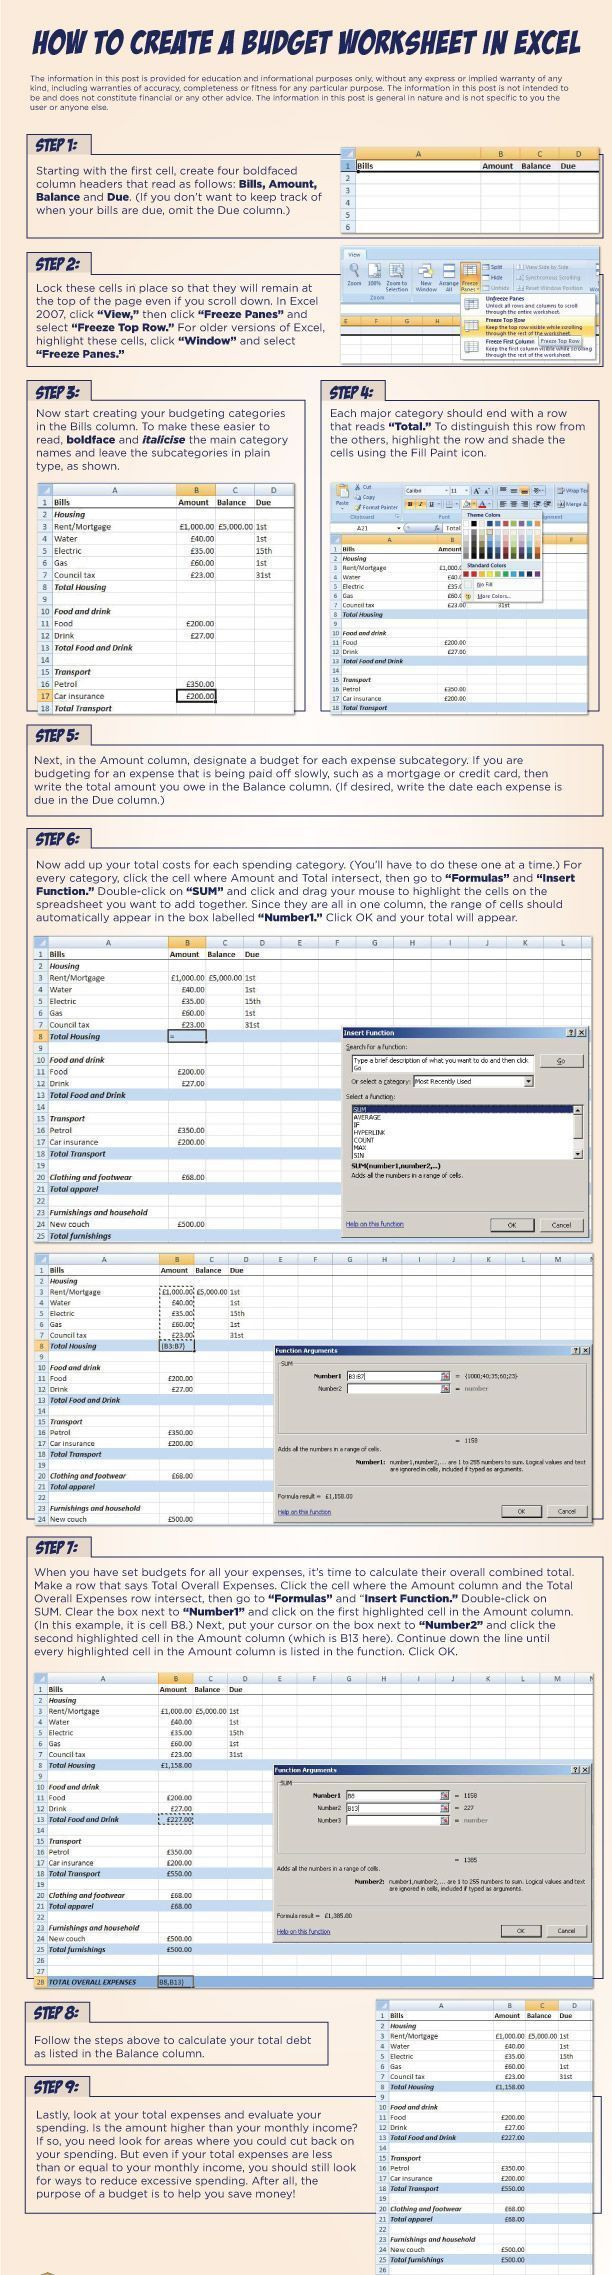 Free Worksheet Lds Budget Worksheet 1000 ideas about budgeting worksheets on pinterest budget learn how to create a worksheet in excel step by step